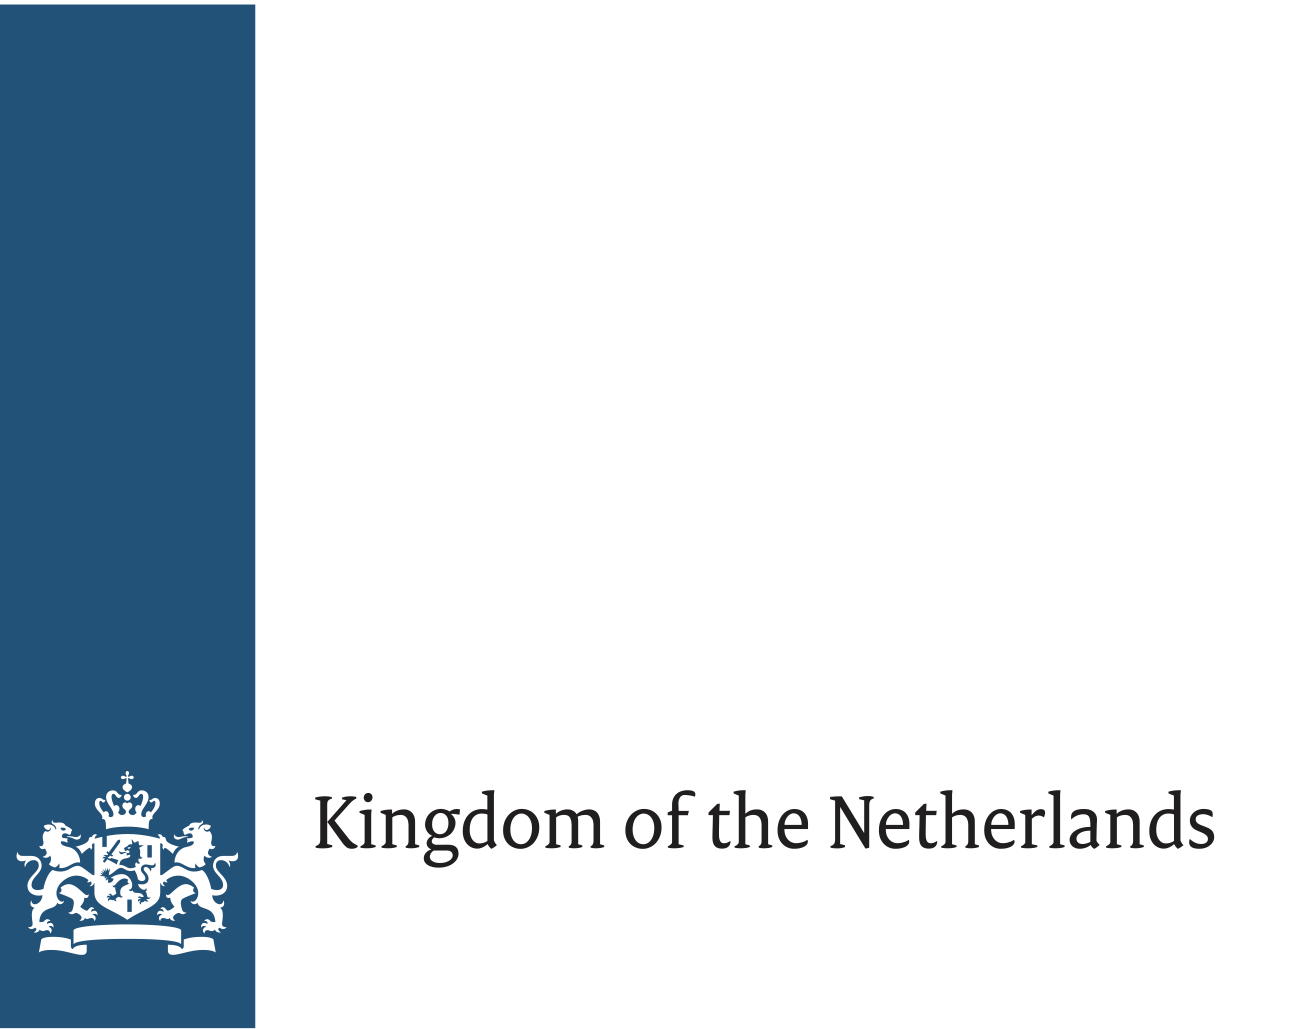 Kingdomm of the Netherlands